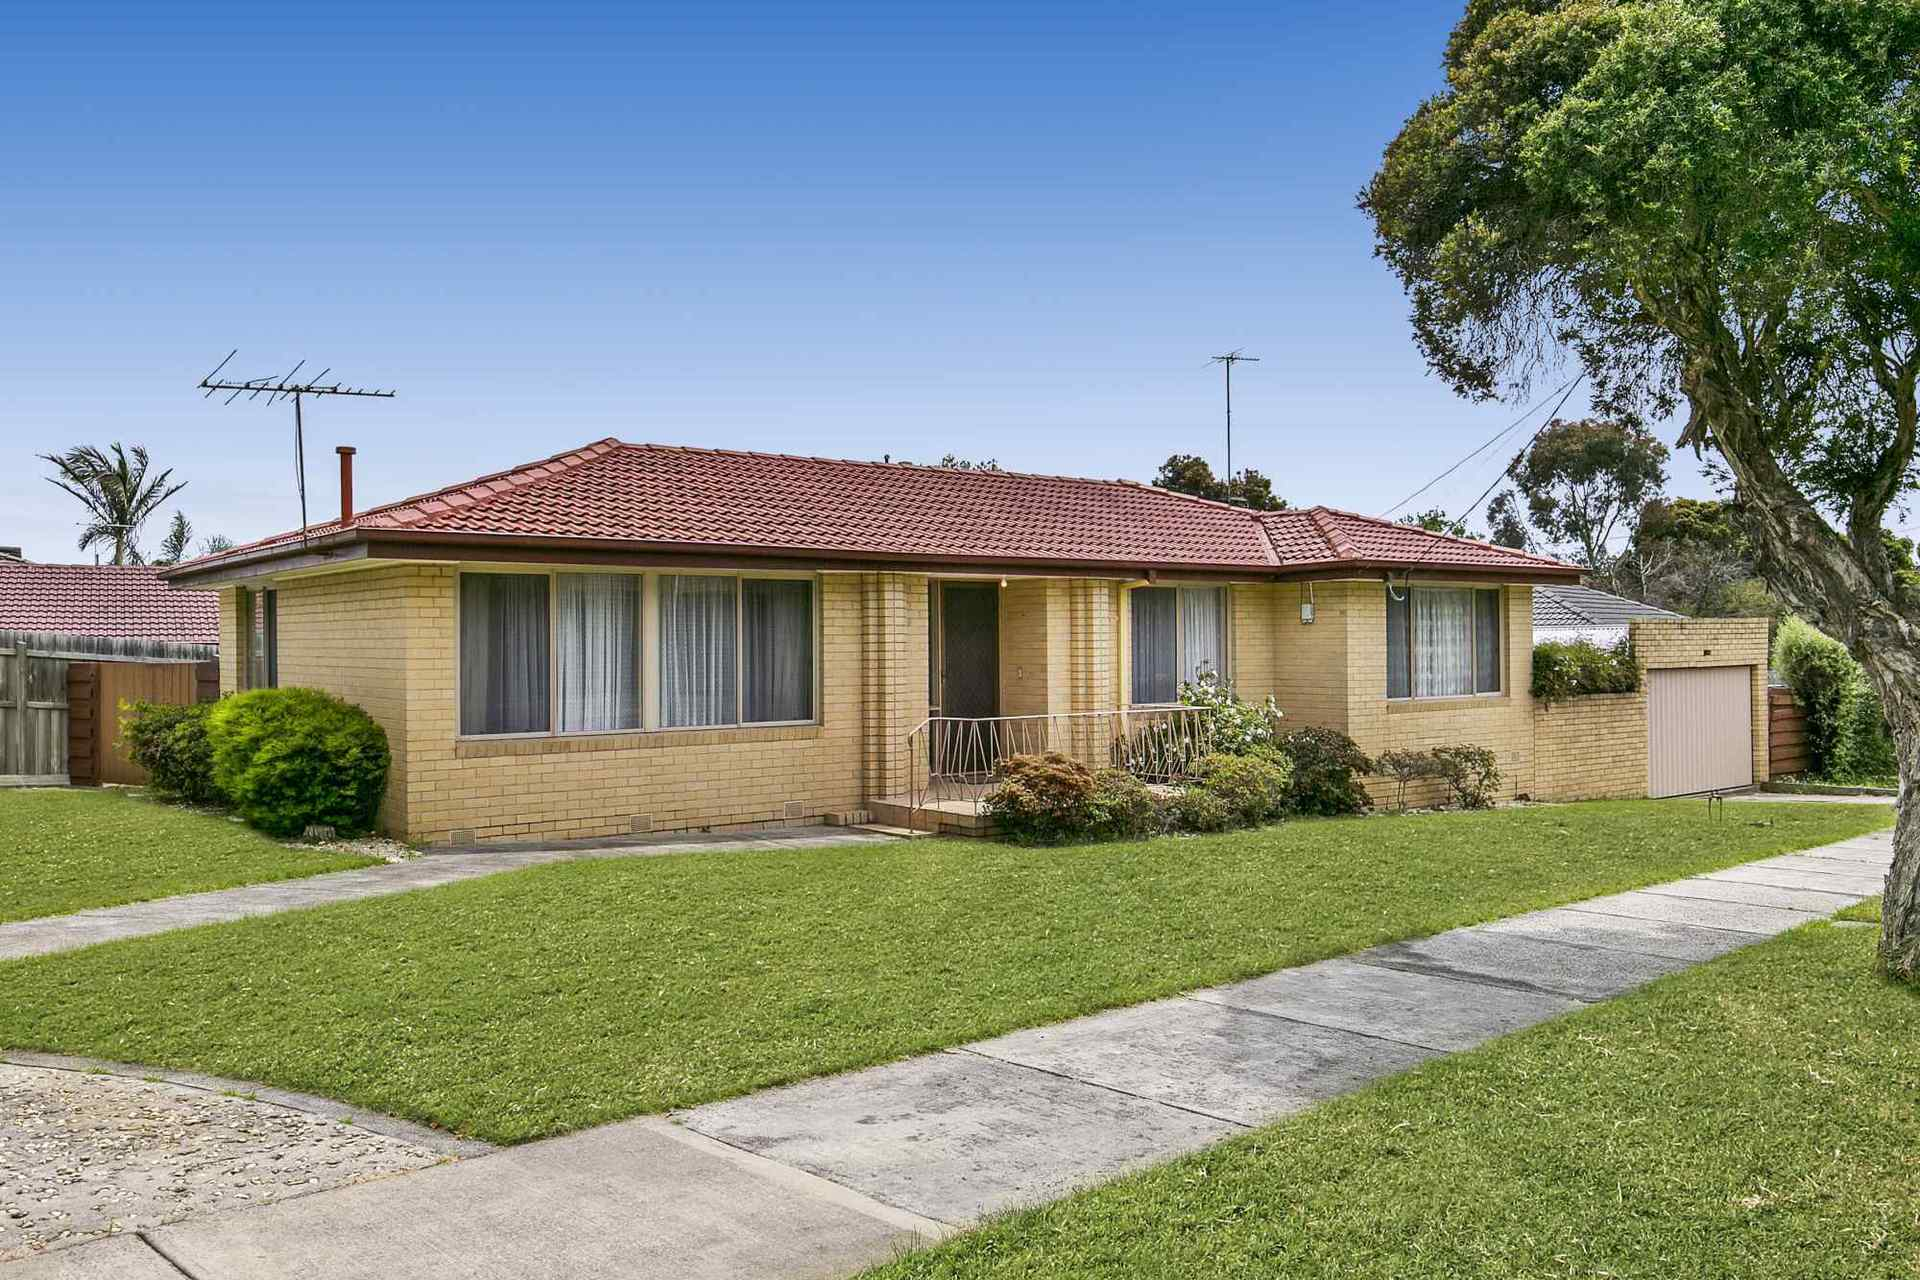 13 Kashmir Crescent, FRANKSTON, VIC, 3199 - Image